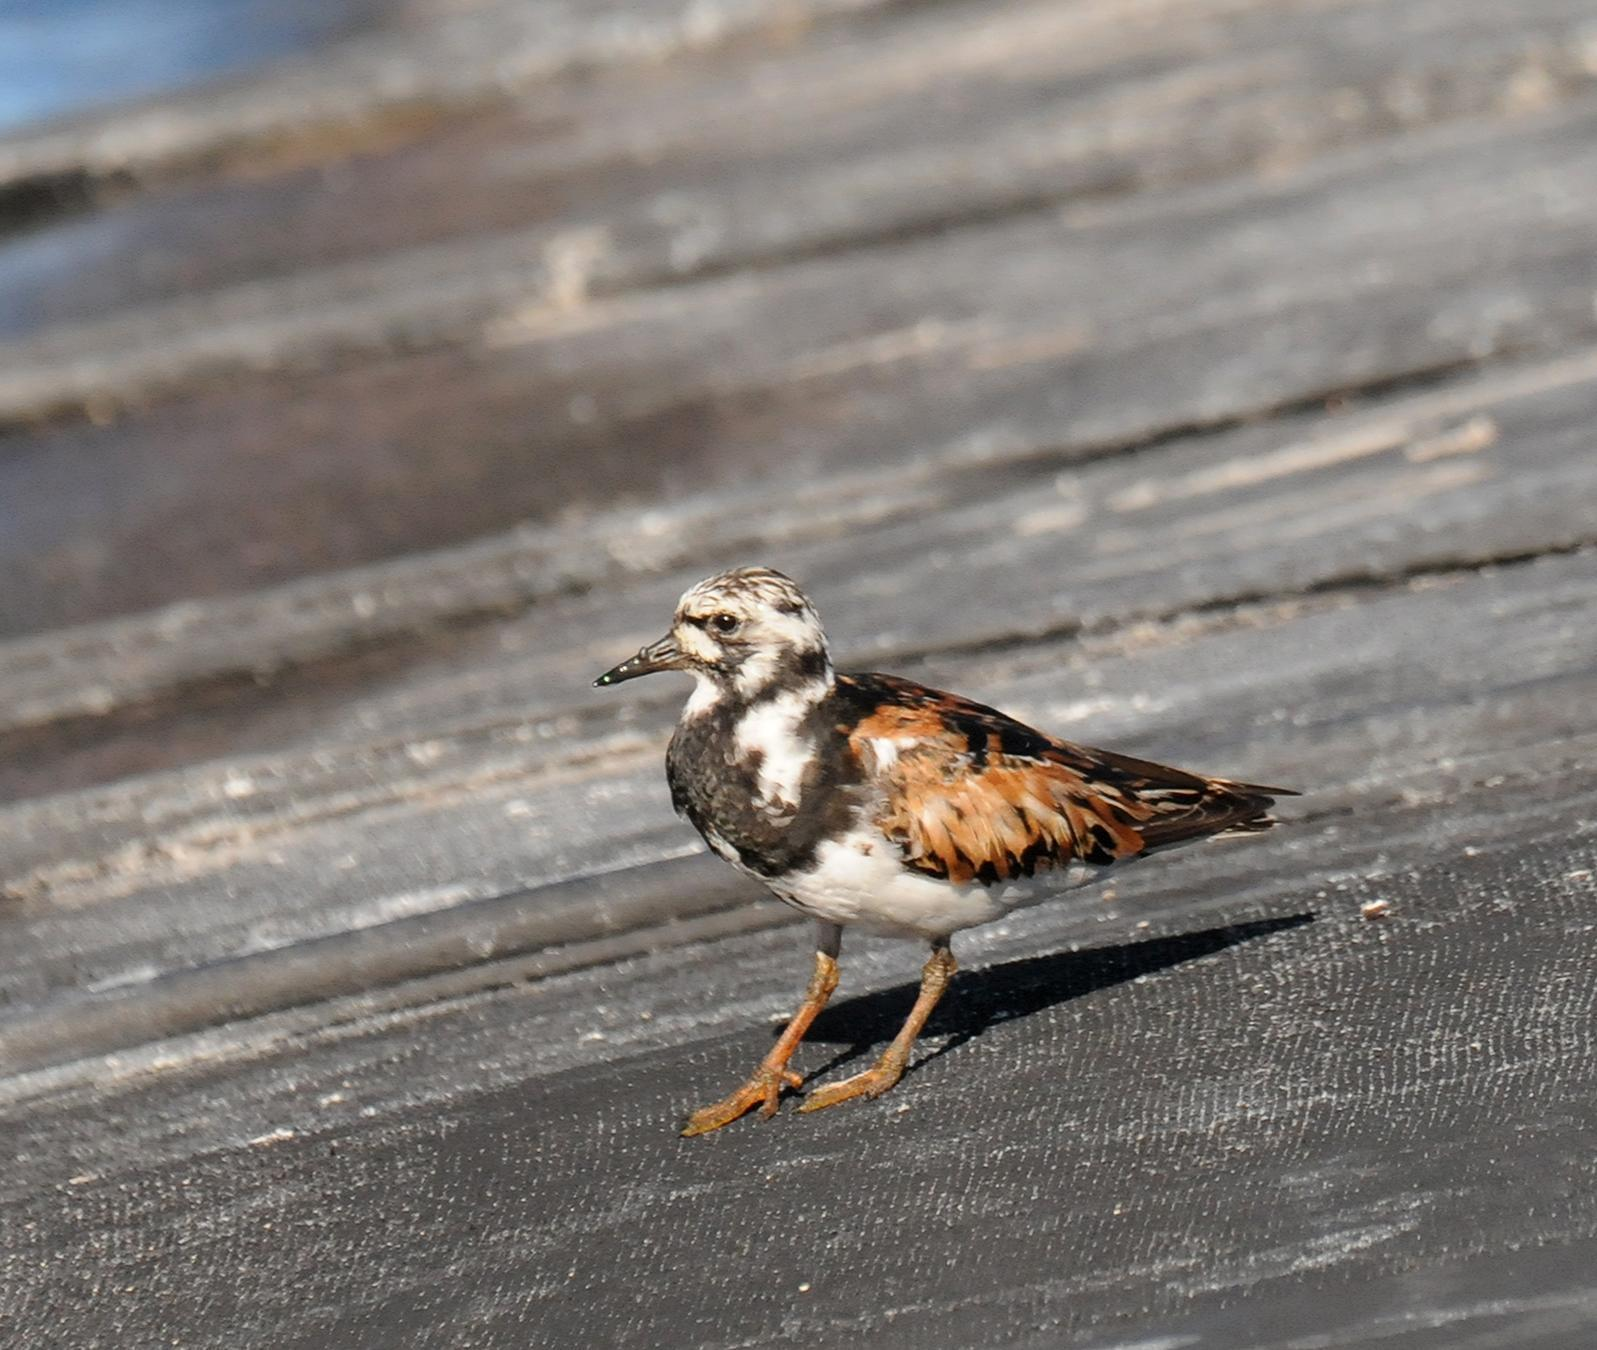 Ruddy Turnstone Photo by Steven Mlodinow